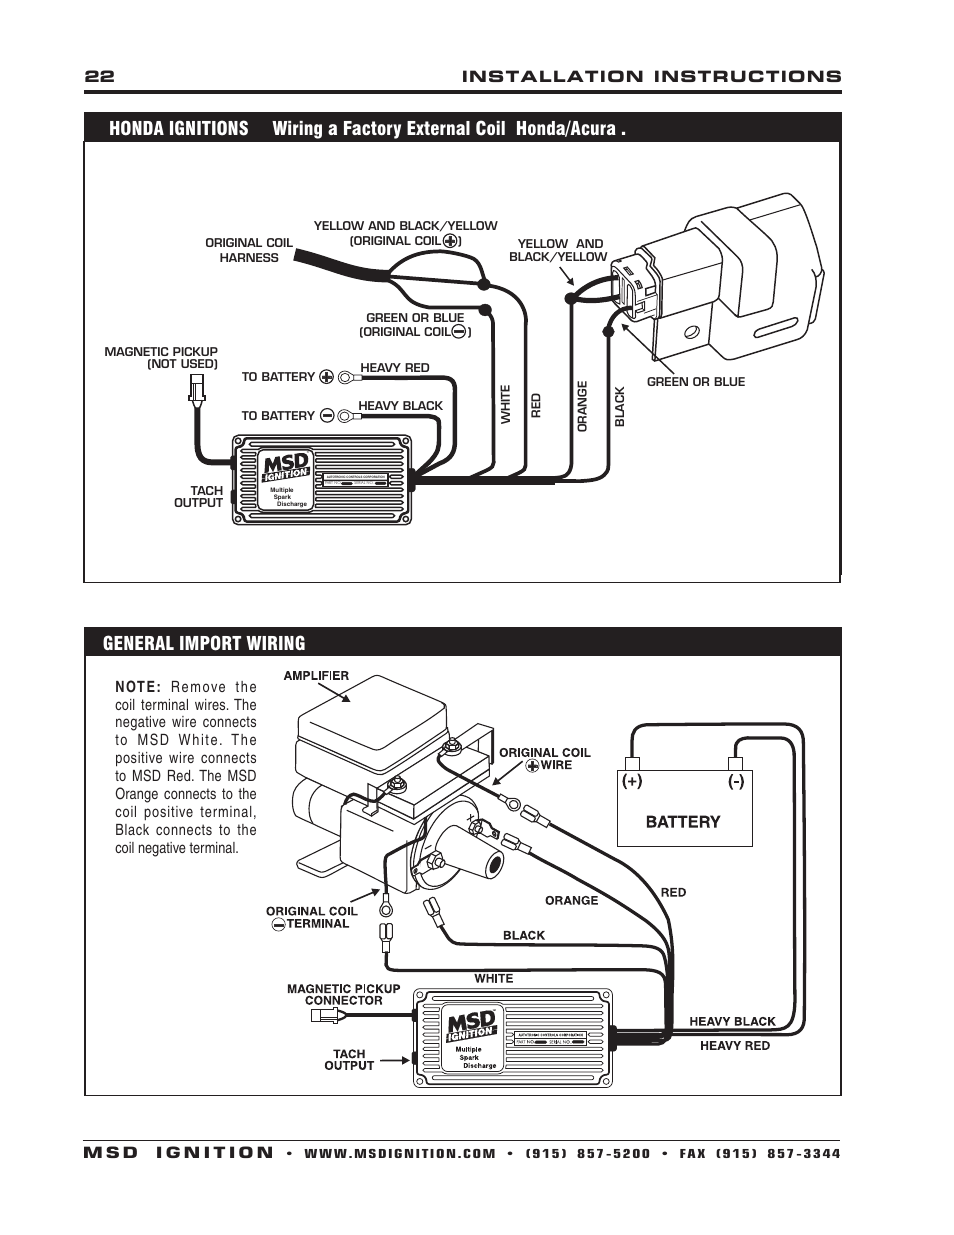 Wiring Diagram Msd 6462 Online Vw Ignition 6430 6aln Control Installation User Manual Page 22 Cdi